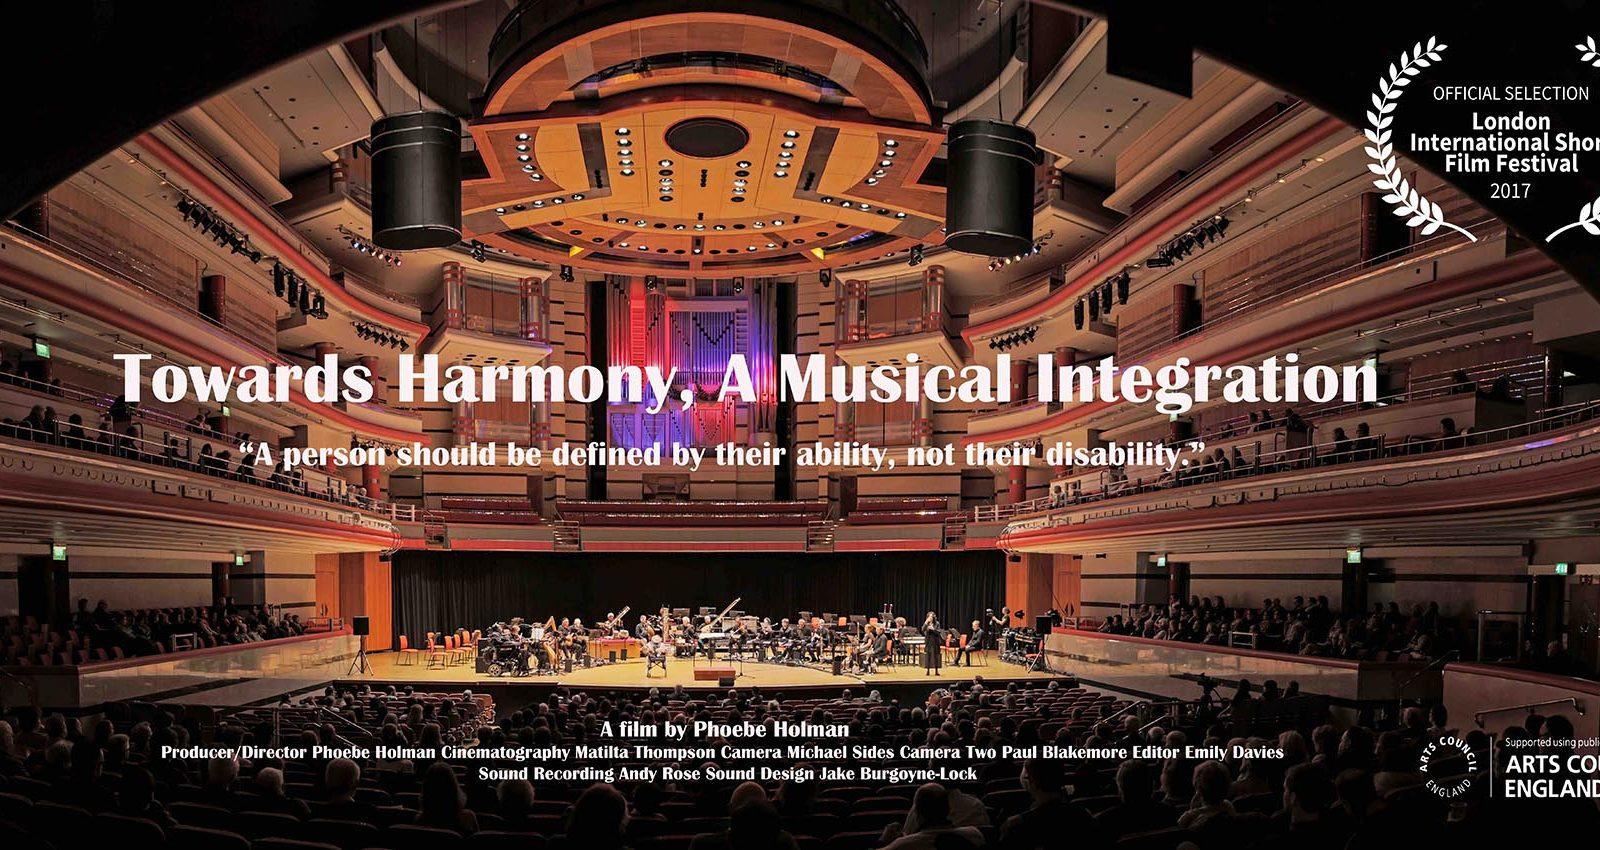 TOwards Harmony poster, wide angle photo of the orchestra on stage at Symphony Hall Birmingham, features the Arts council England logo and teh London international Short Film Festival Logo